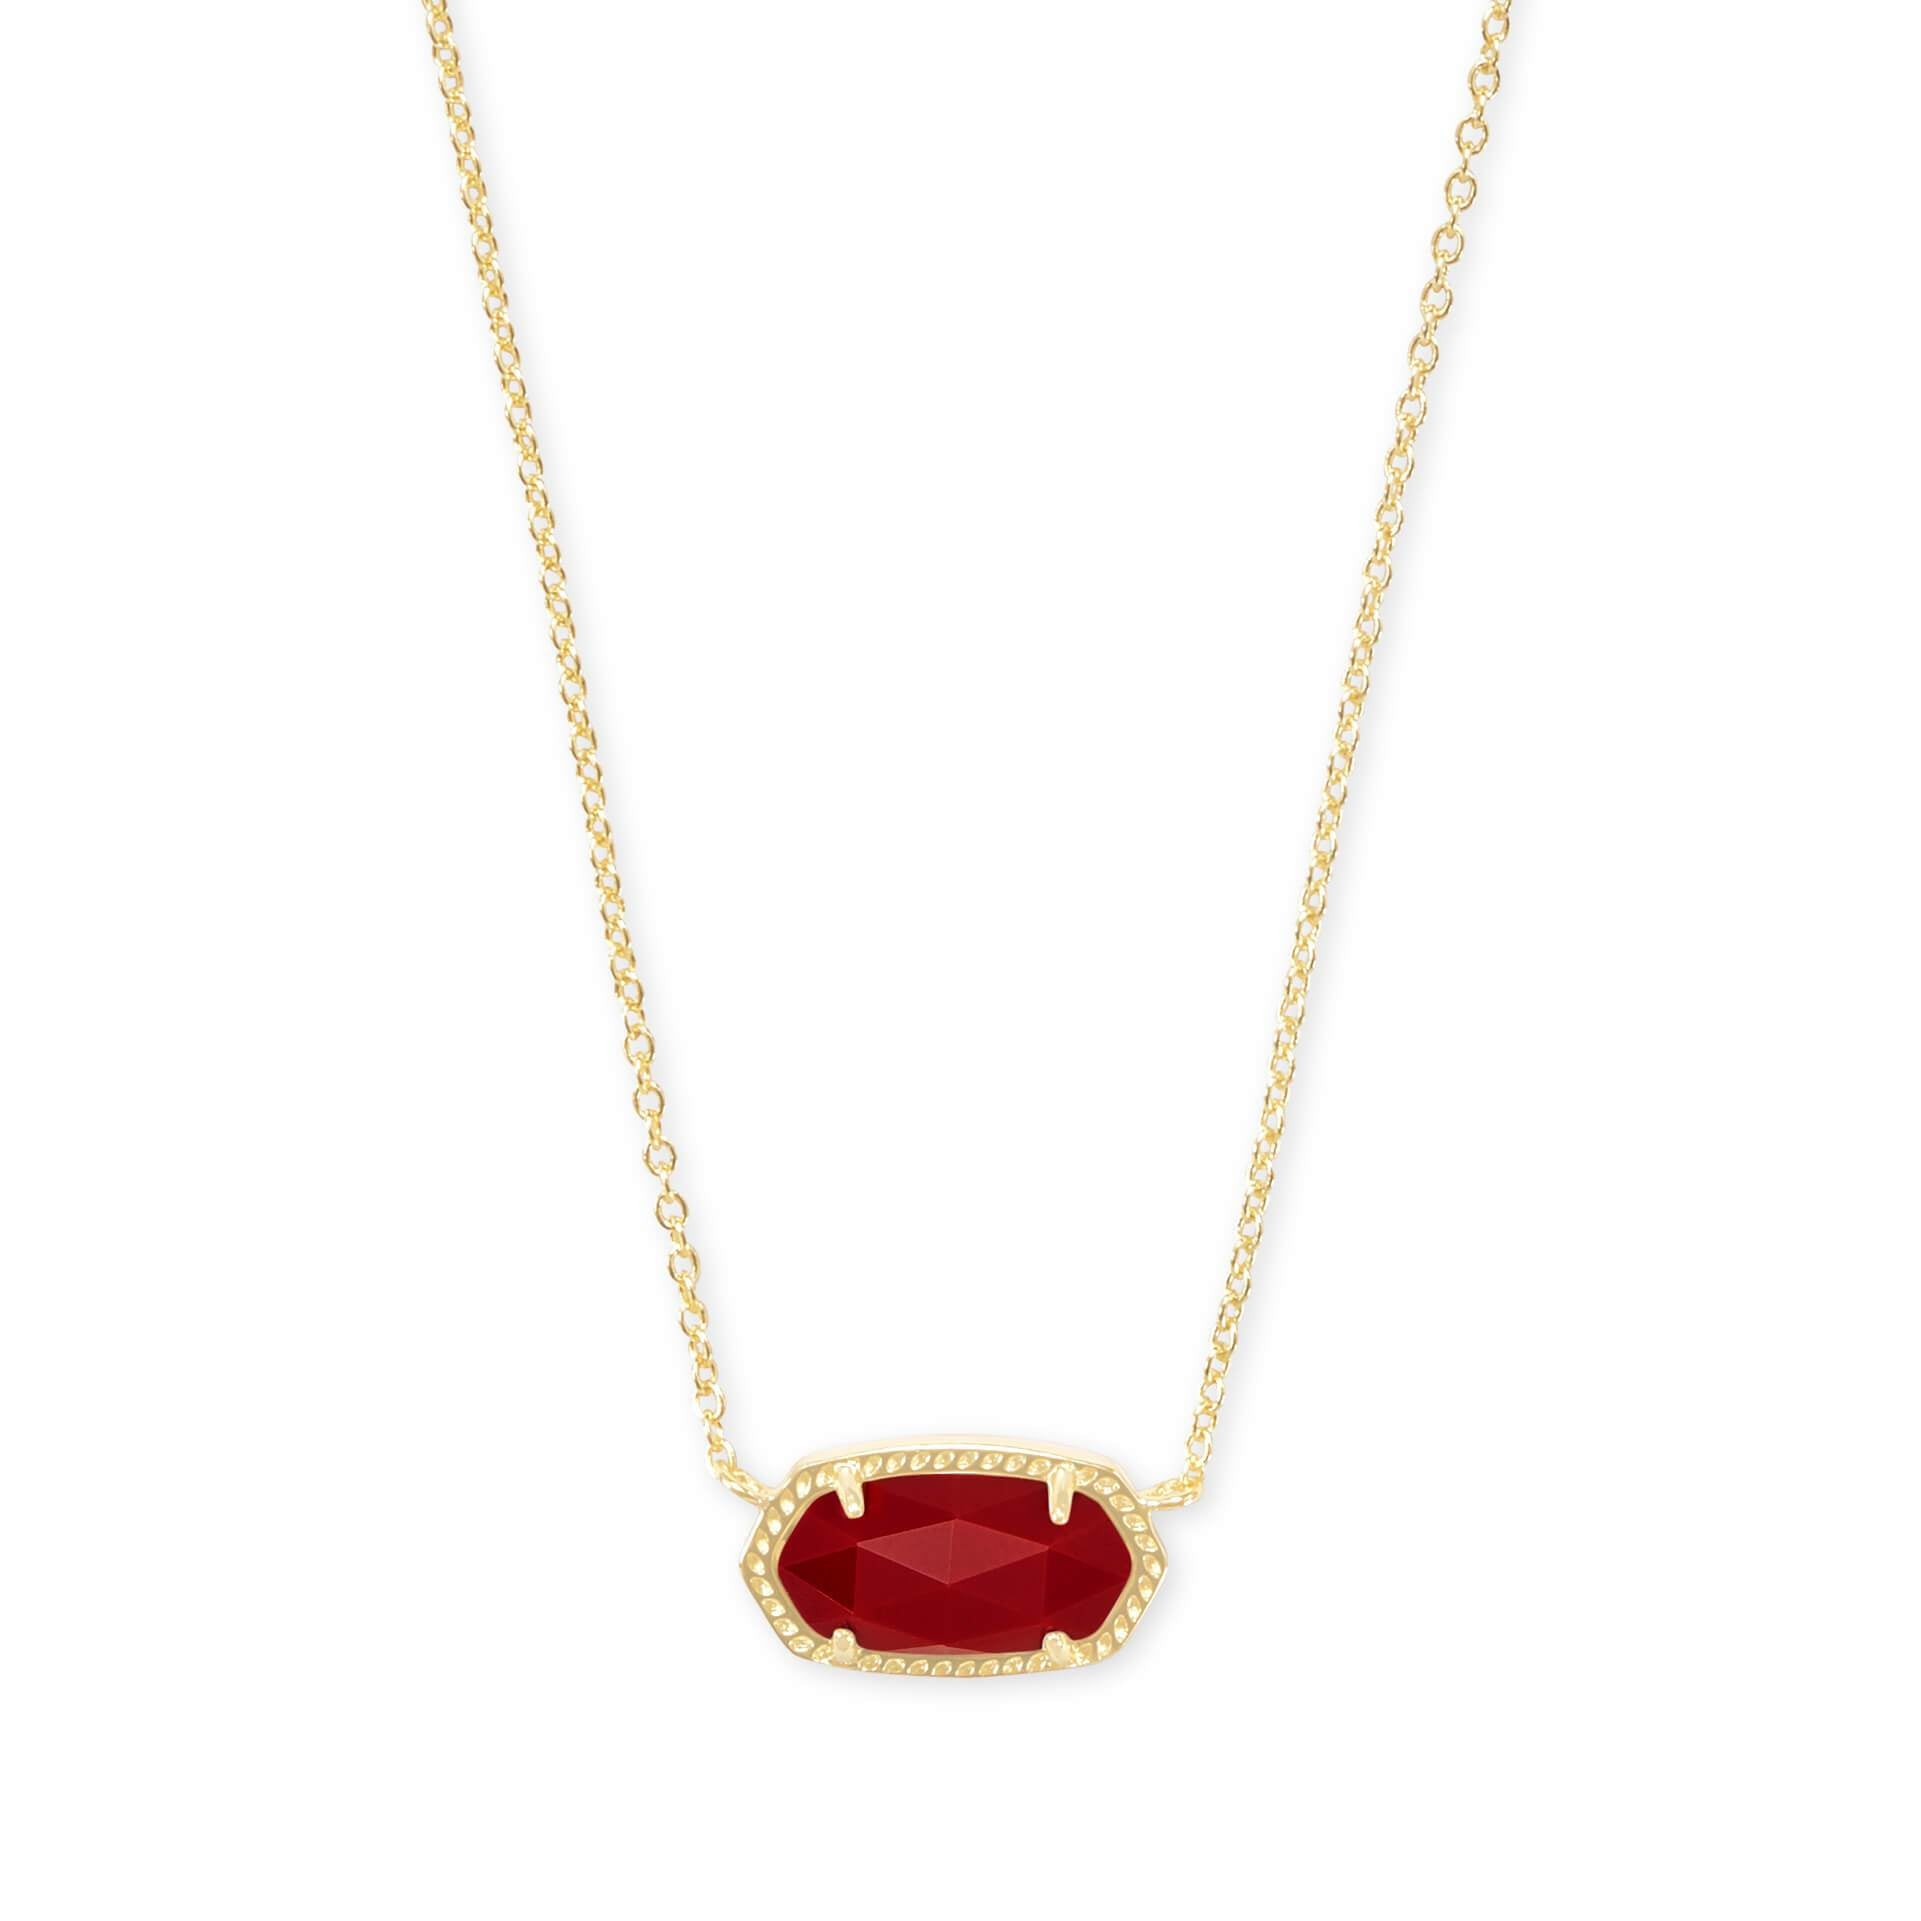 KS Elisa Necklace in Dark Red Gold